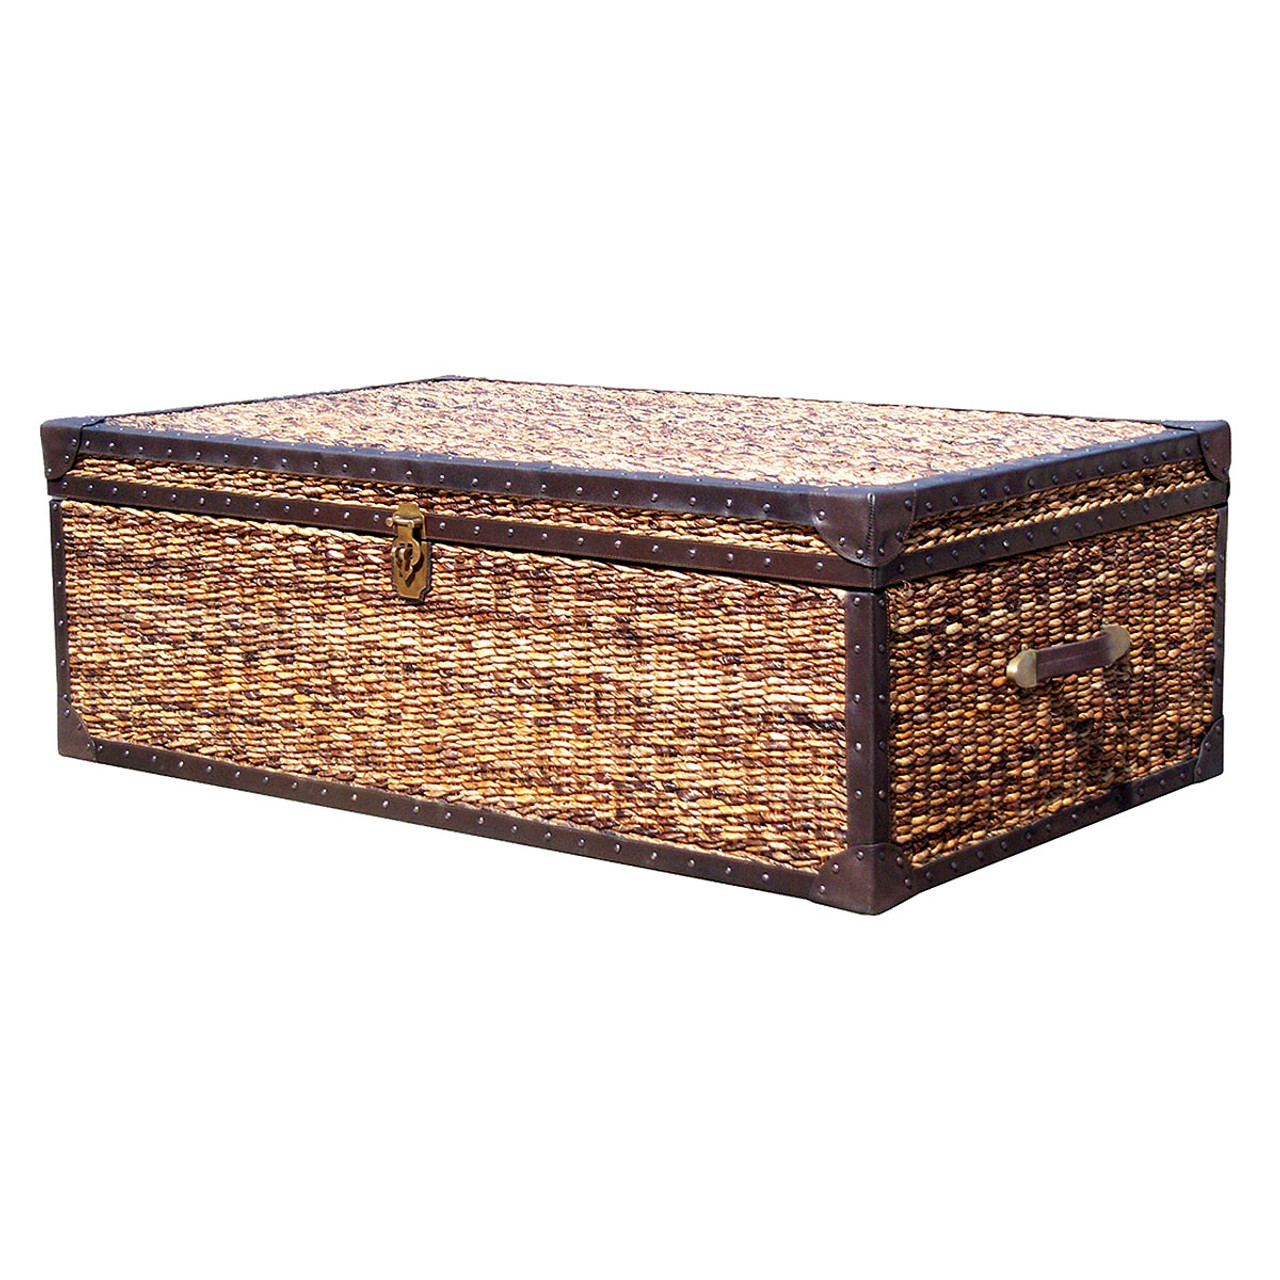 Lanai trunk coffee table 50 x 30 wicker banana leaf woven banana leaf woven trunk coffee table geotapseo Image collections